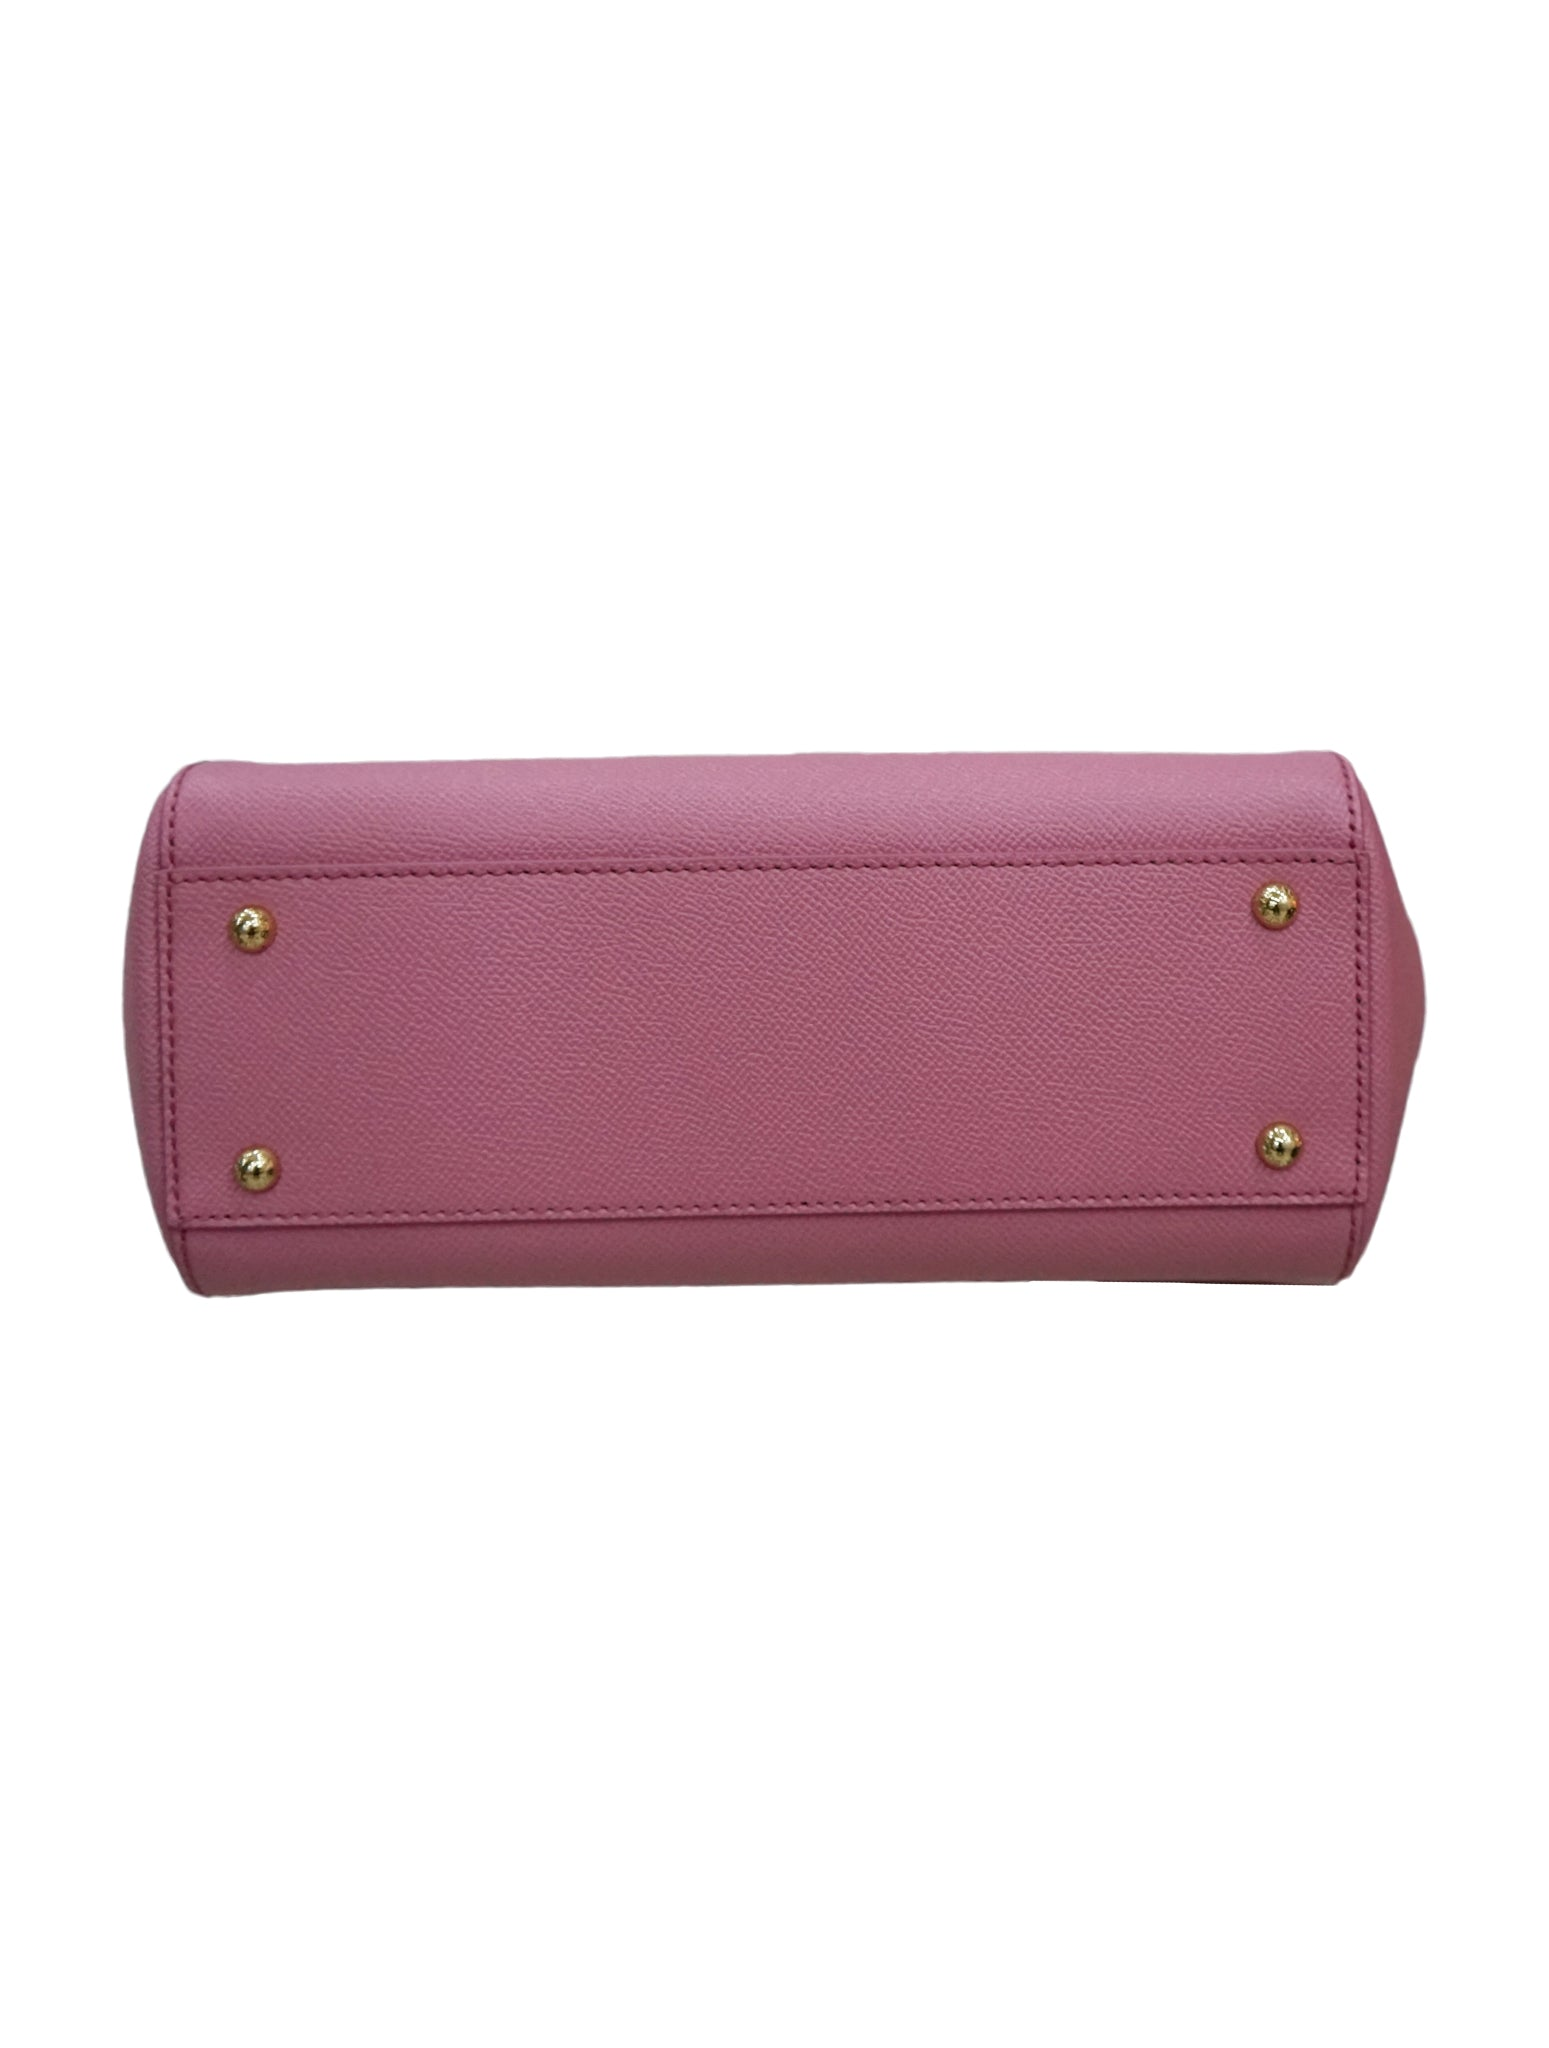 PINK DAUPHINE LEATHER MISS SICILY BAG